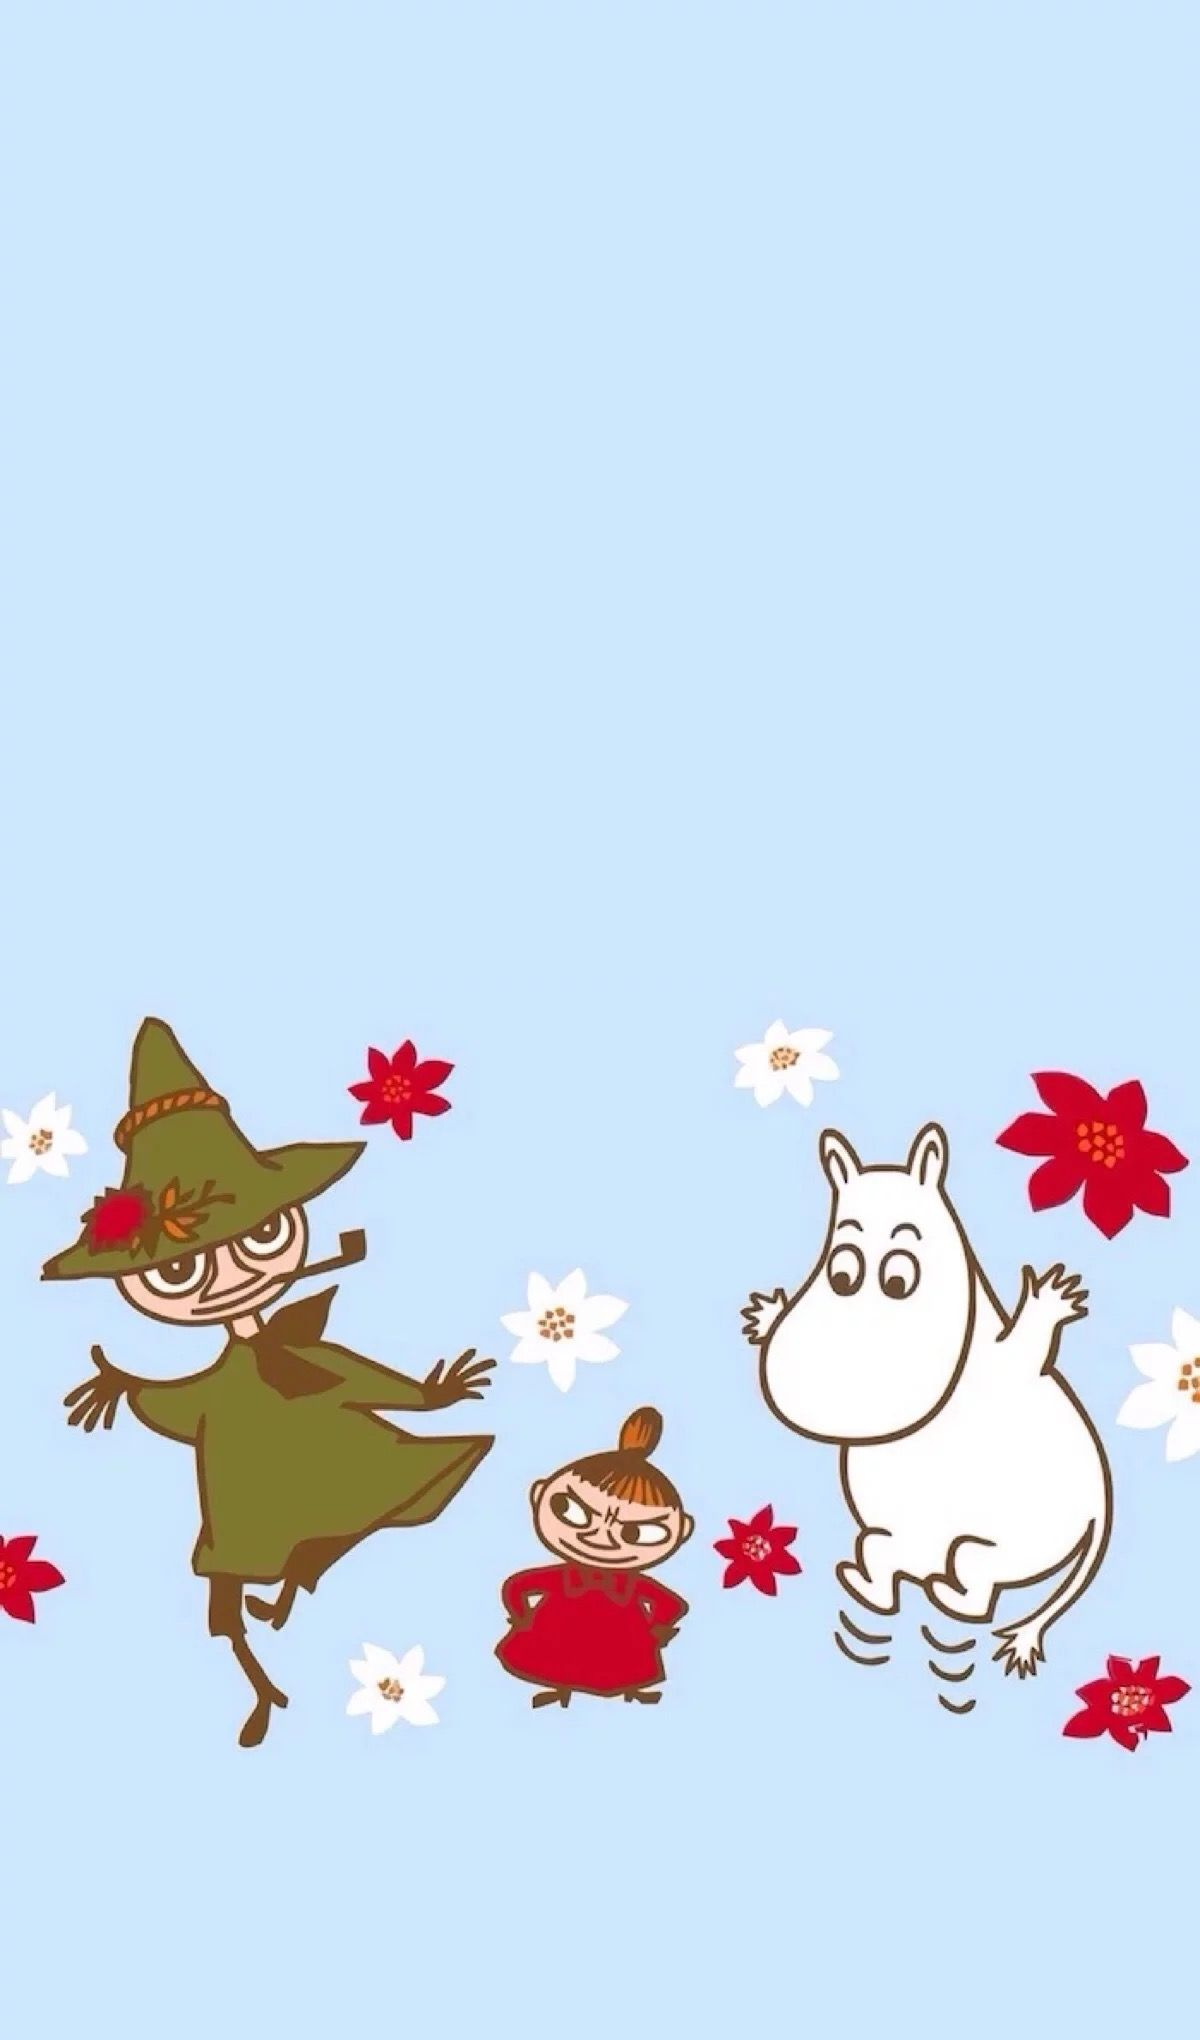 moomin doodle 2 by - photo #30